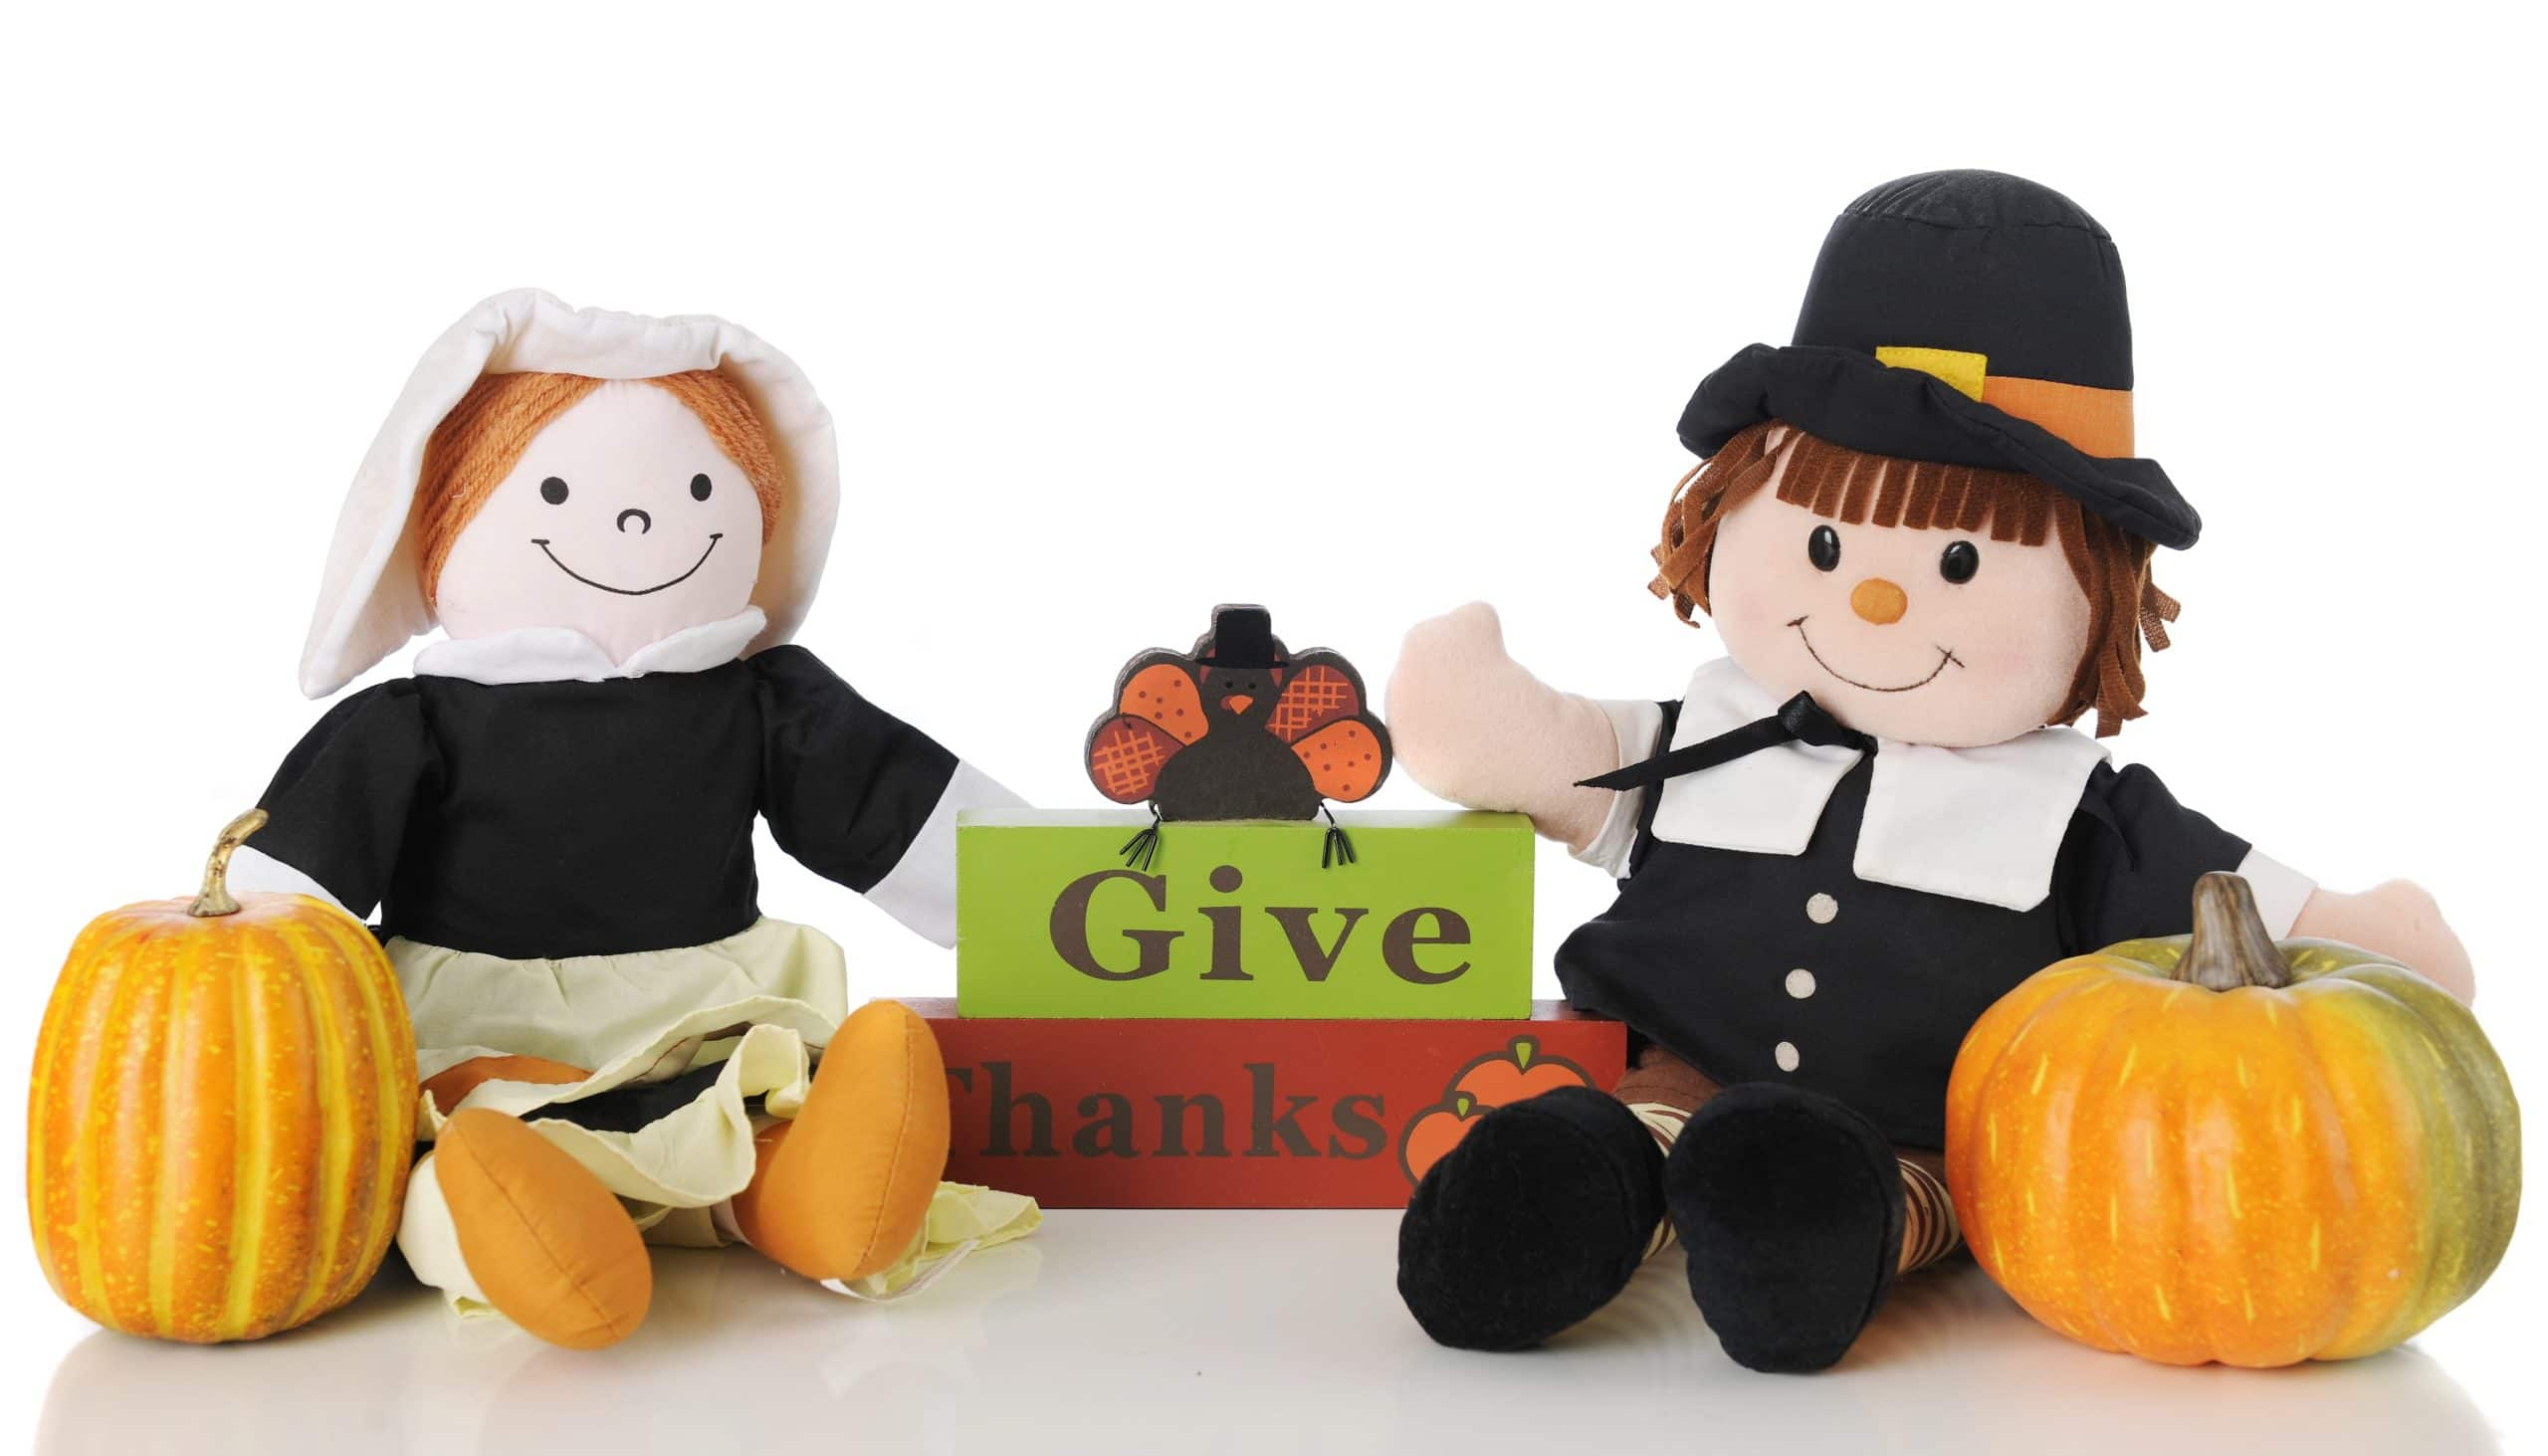 Two Thanksgiving Toy Pilgrims